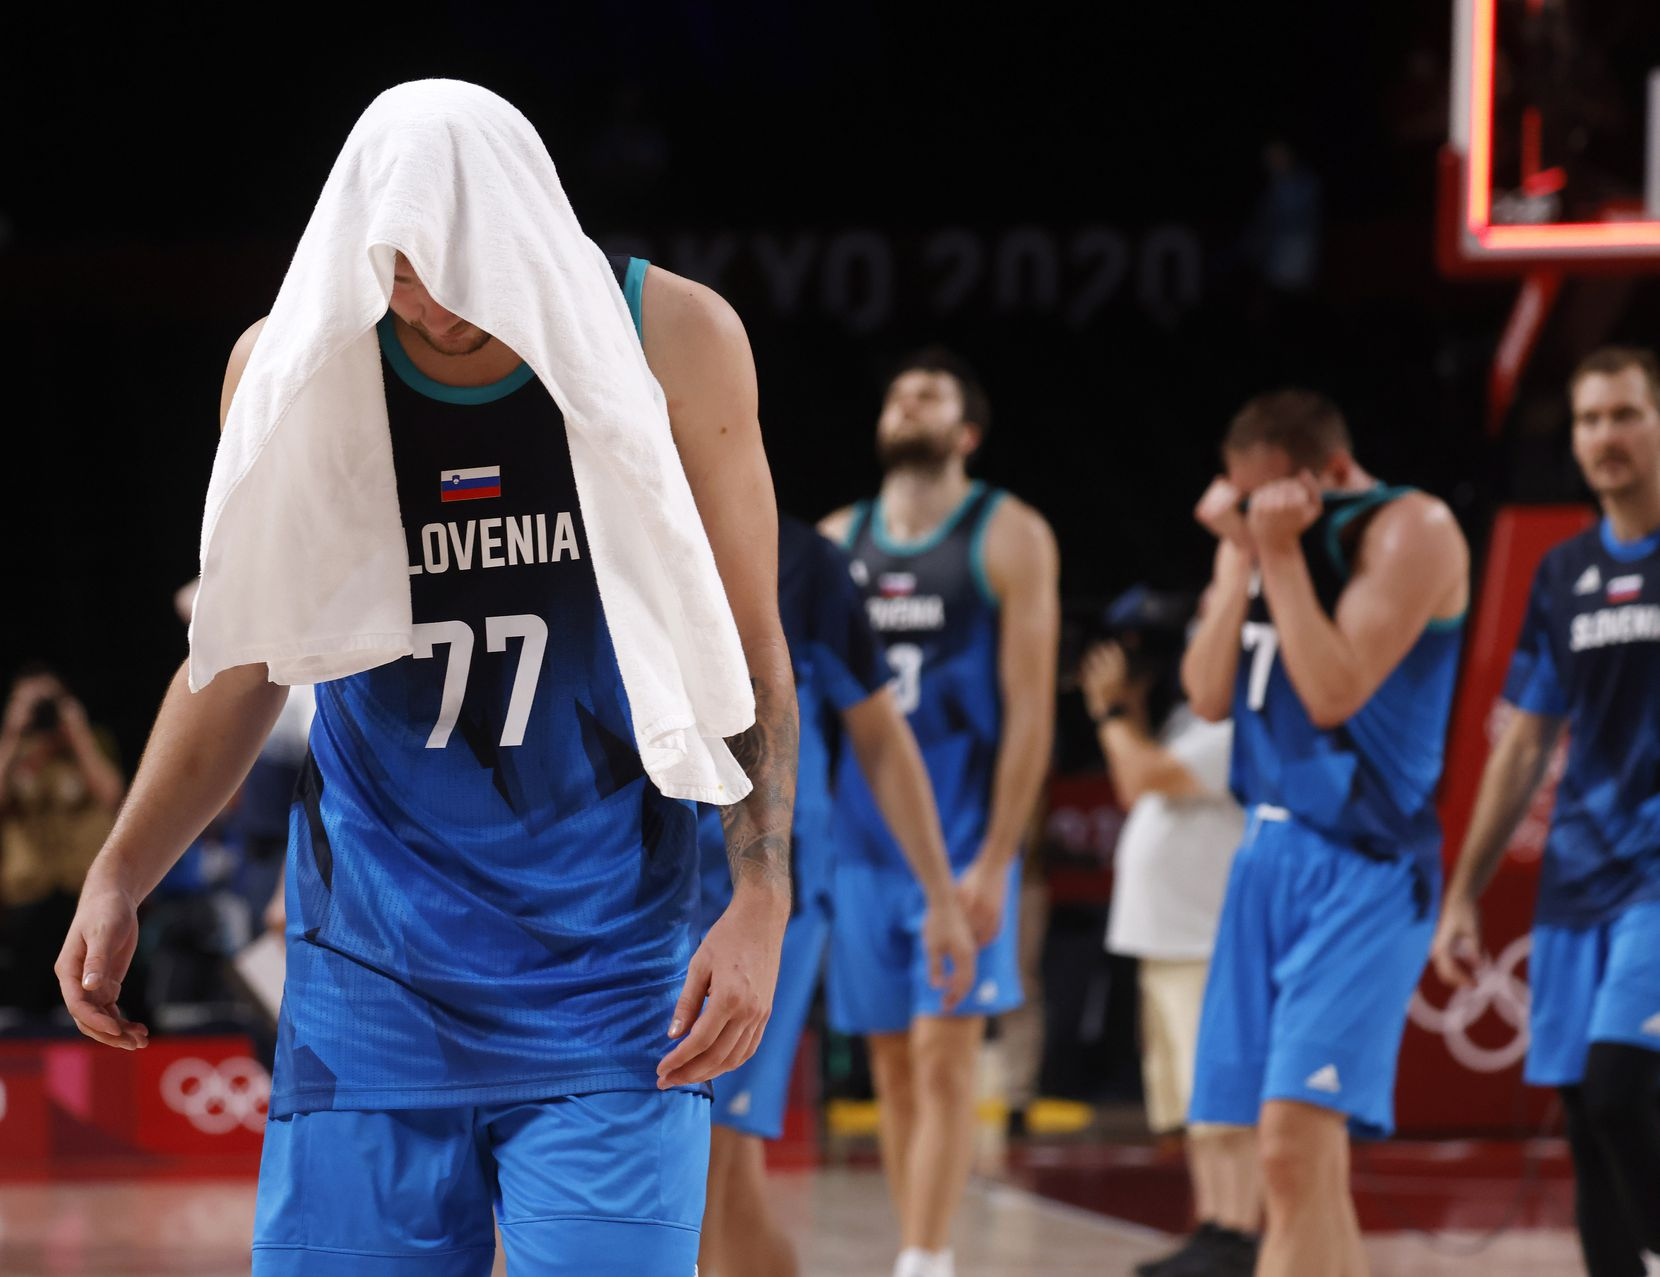 Slovenia's Luka Doncic (77) walks off the court dejected after losing to France 90-89 after a men's basketball semifinal at the postponed 2020 Tokyo Olympics at Saitama Super Arena, on Thursday, August 5, 2021, in Saitama, Japan. Slovenia's Klemenn Prepelic (7) is in tears after getting blocked by France's Nicolas Batum (5) on the final play. Slovenia will play in the bronze medal game. (Vernon Bryant/The Dallas Morning News)